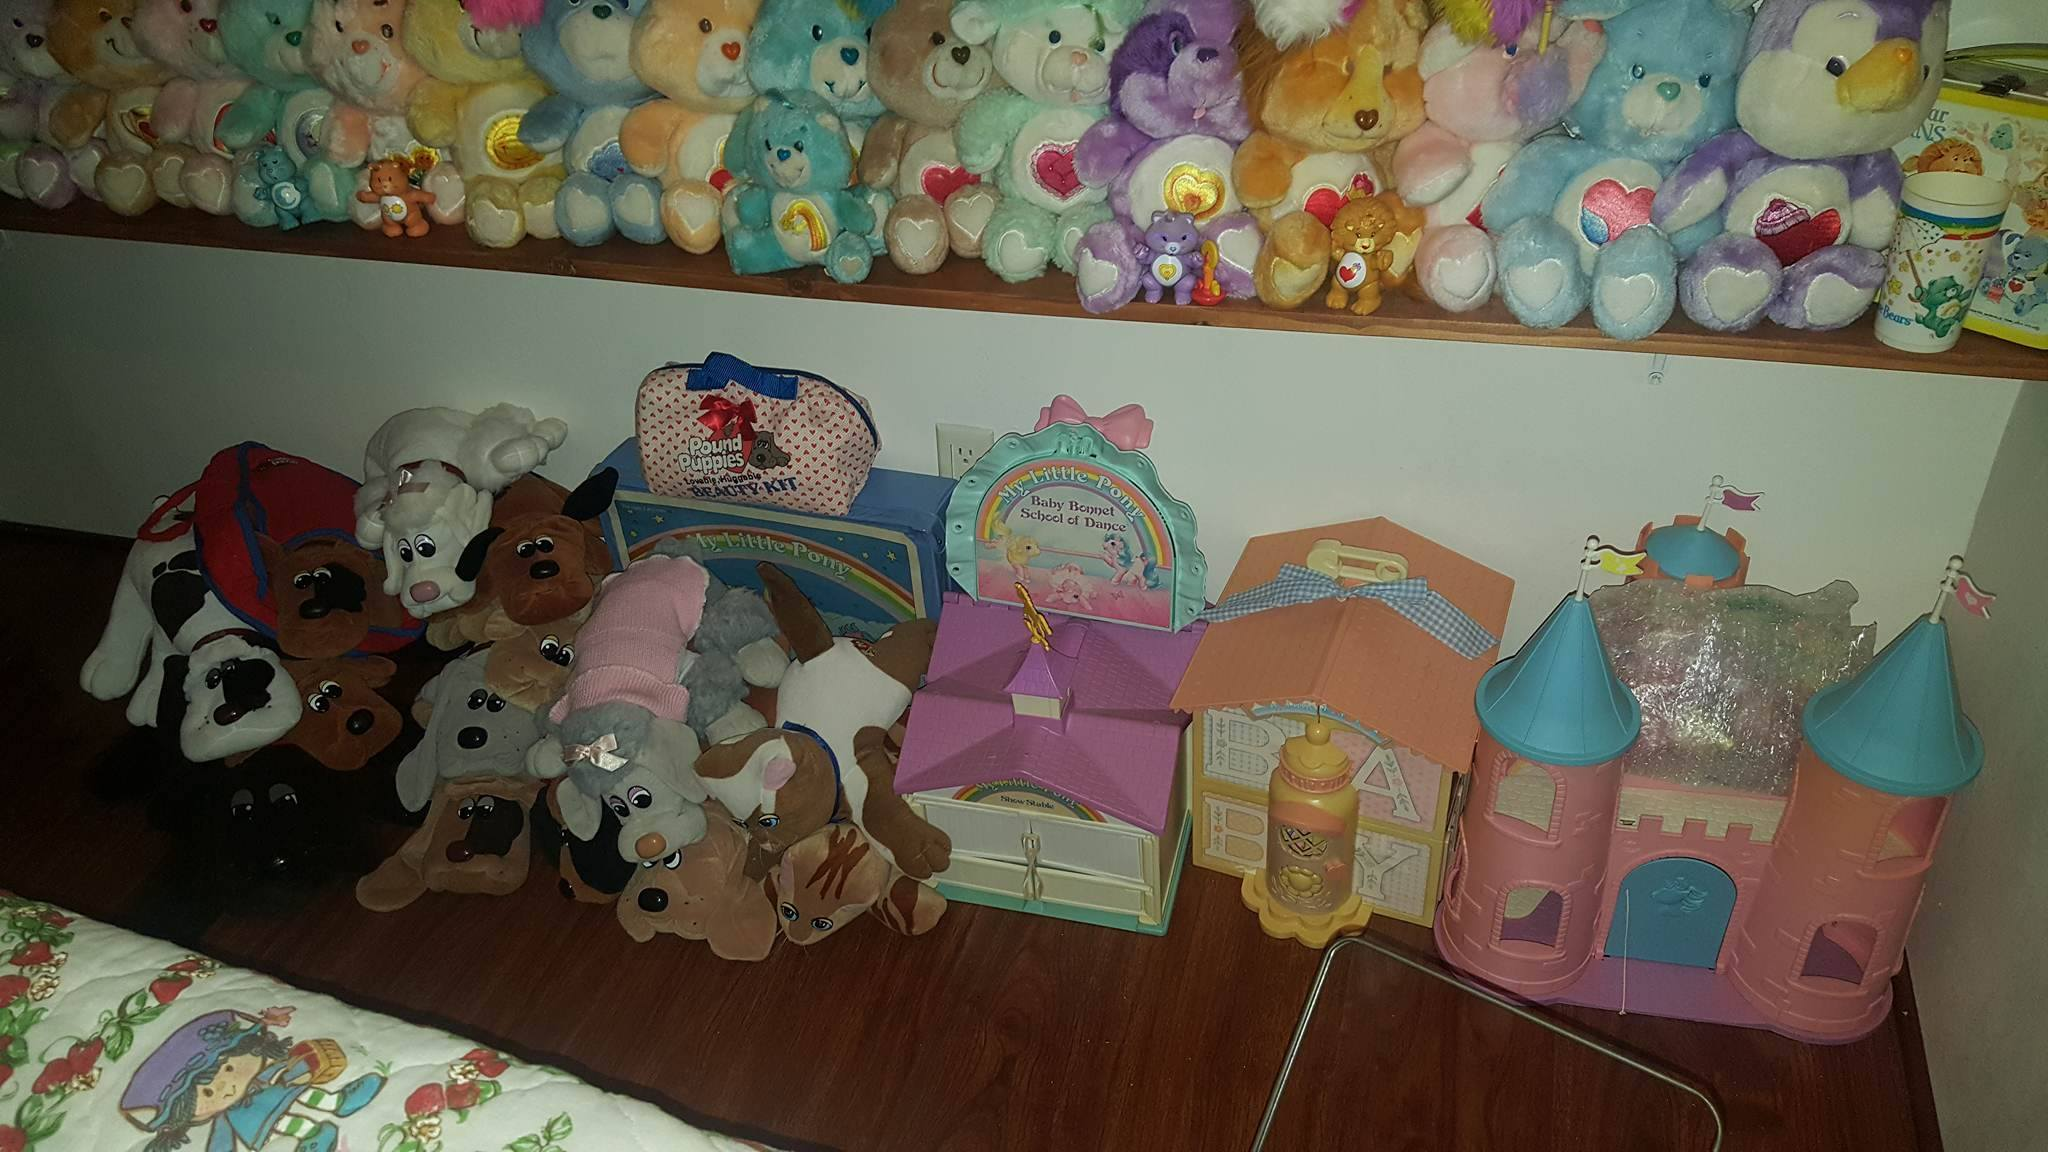 Care Bears, Pound Puppies (and Pound Kitties) - So Much 80;s